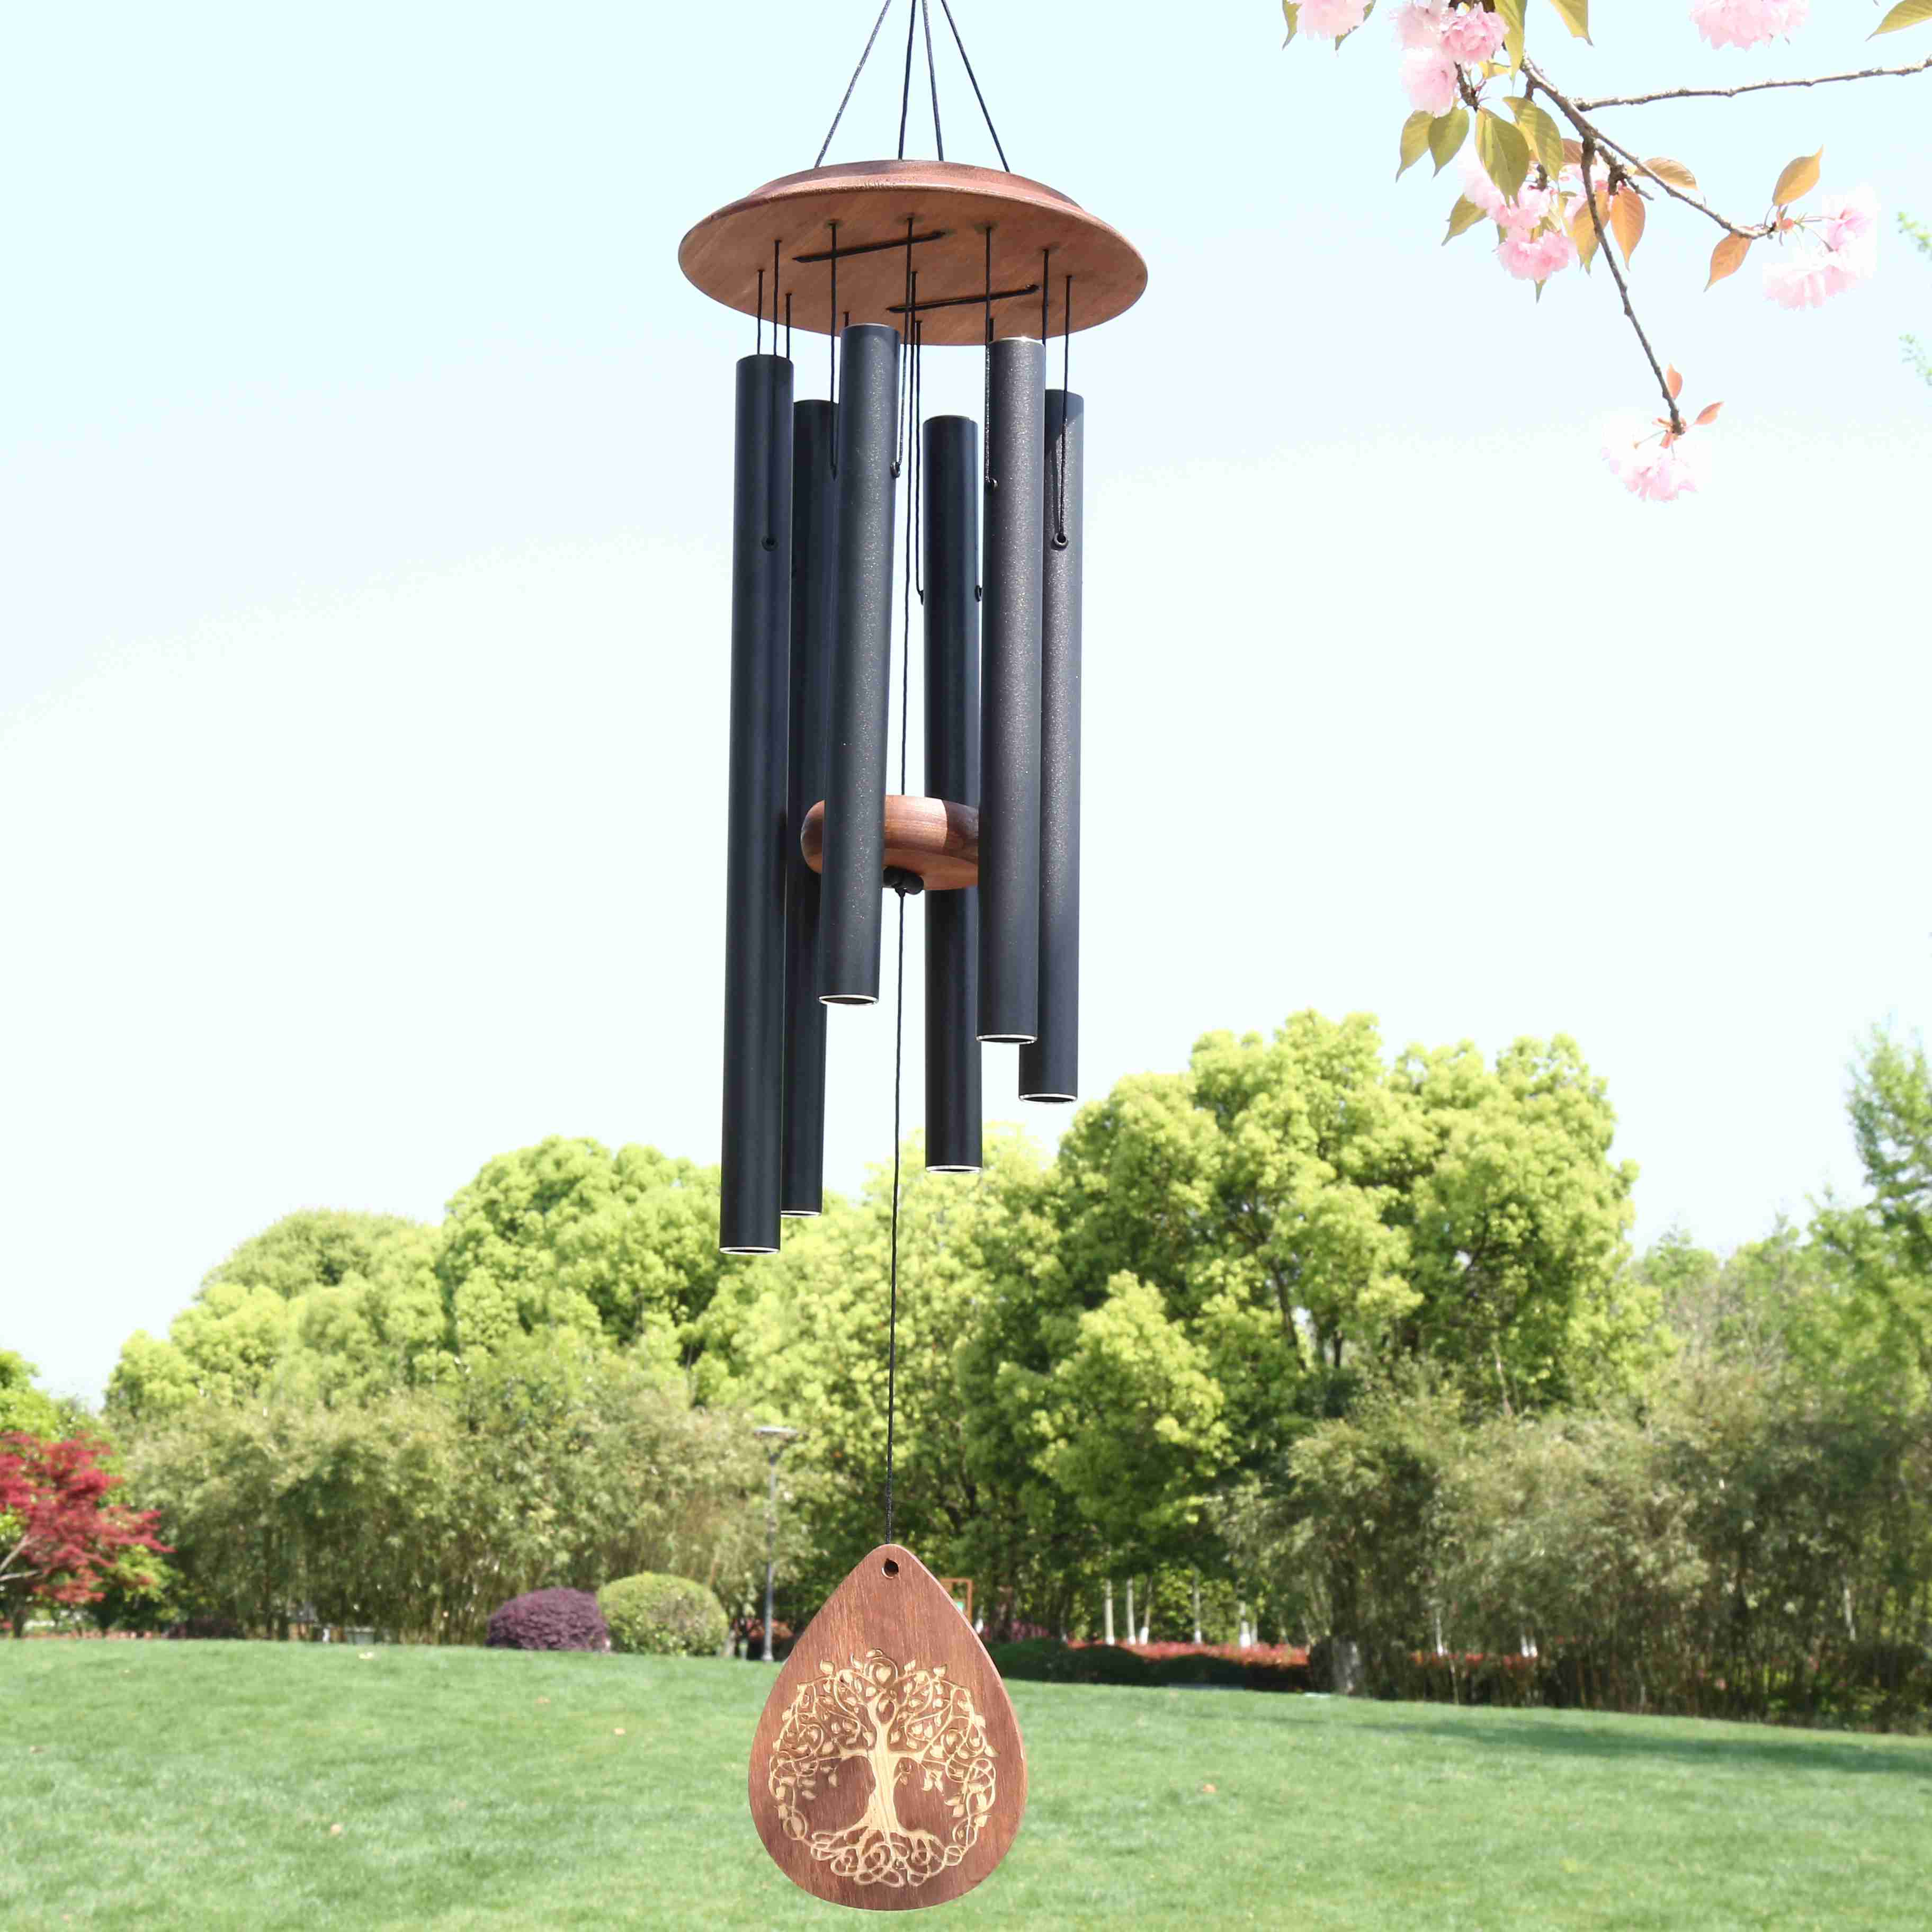 memorial-wind-chimes-sympathy-gift with discount code